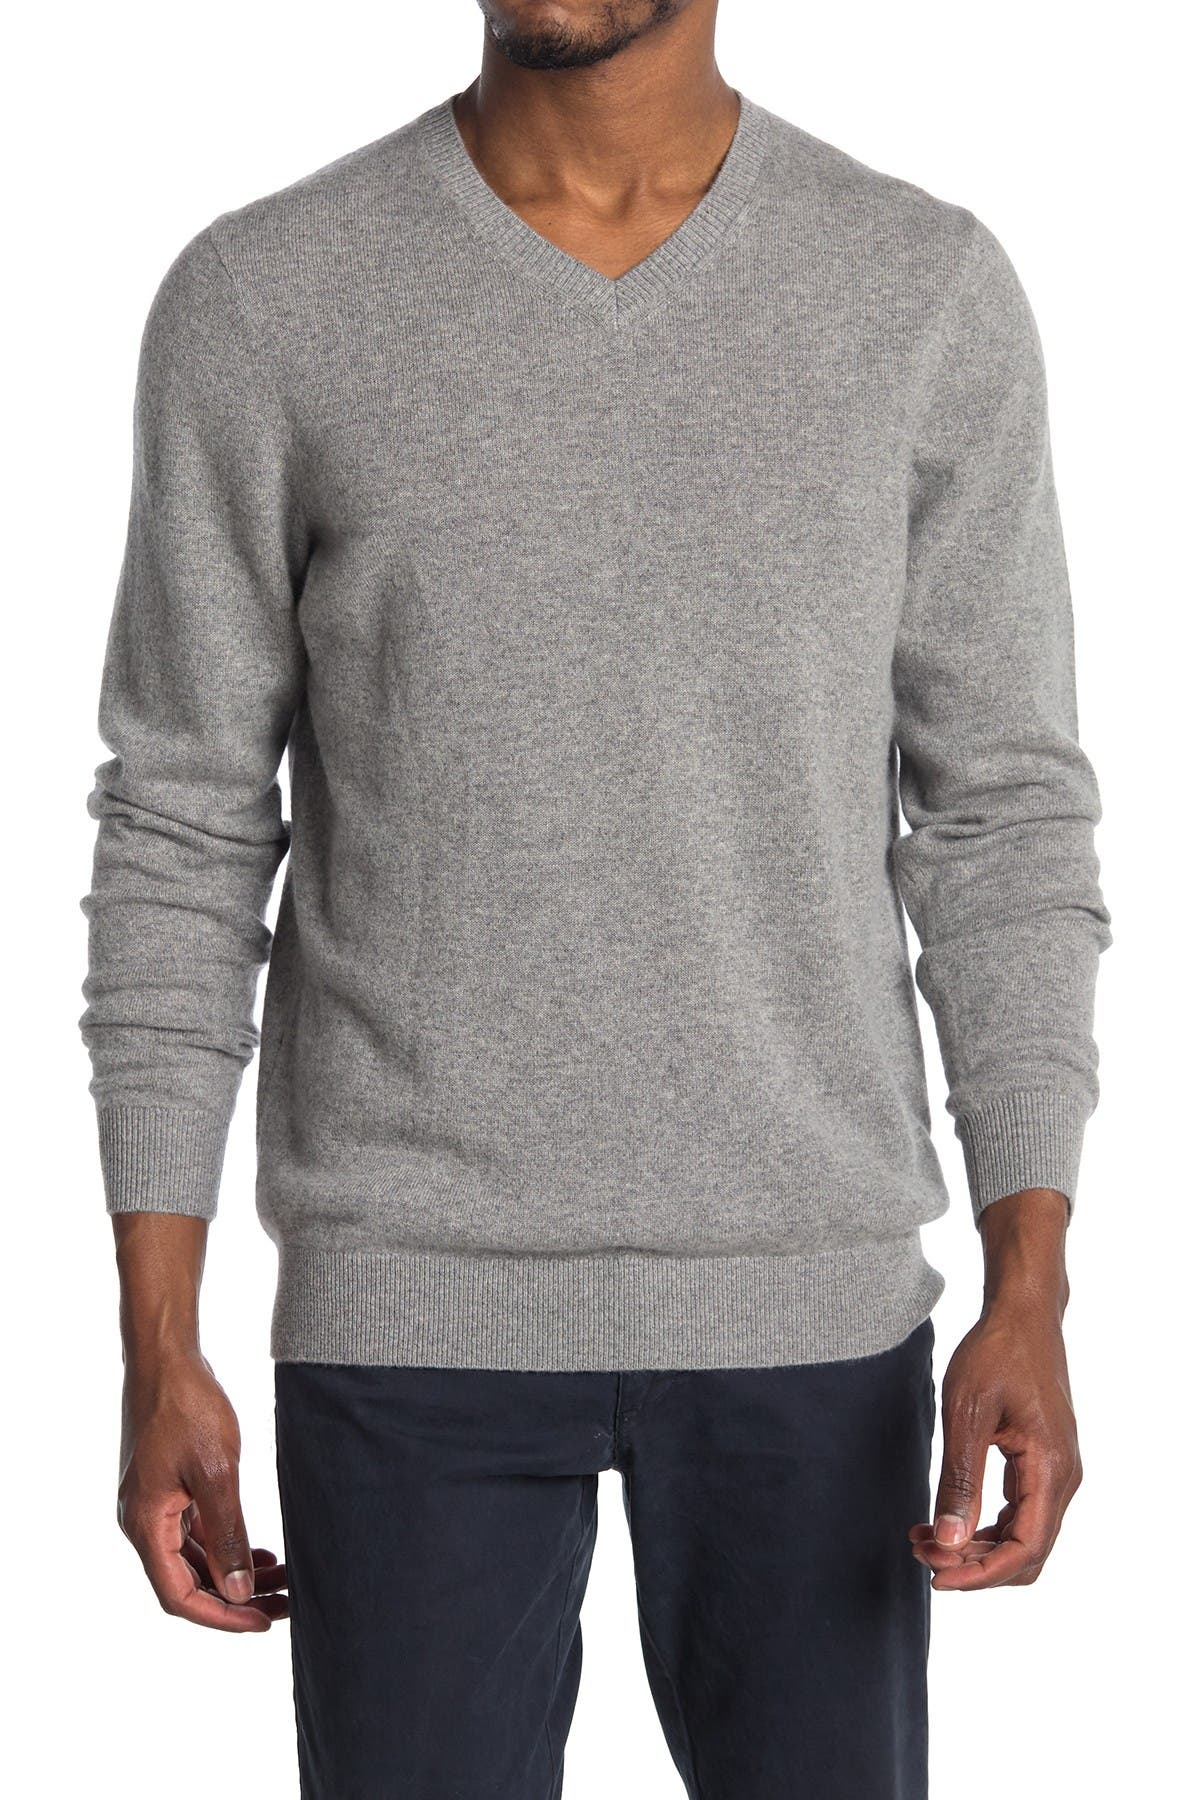 Image of TRAVIS MATHEW Cashmere V-Neck Sweater